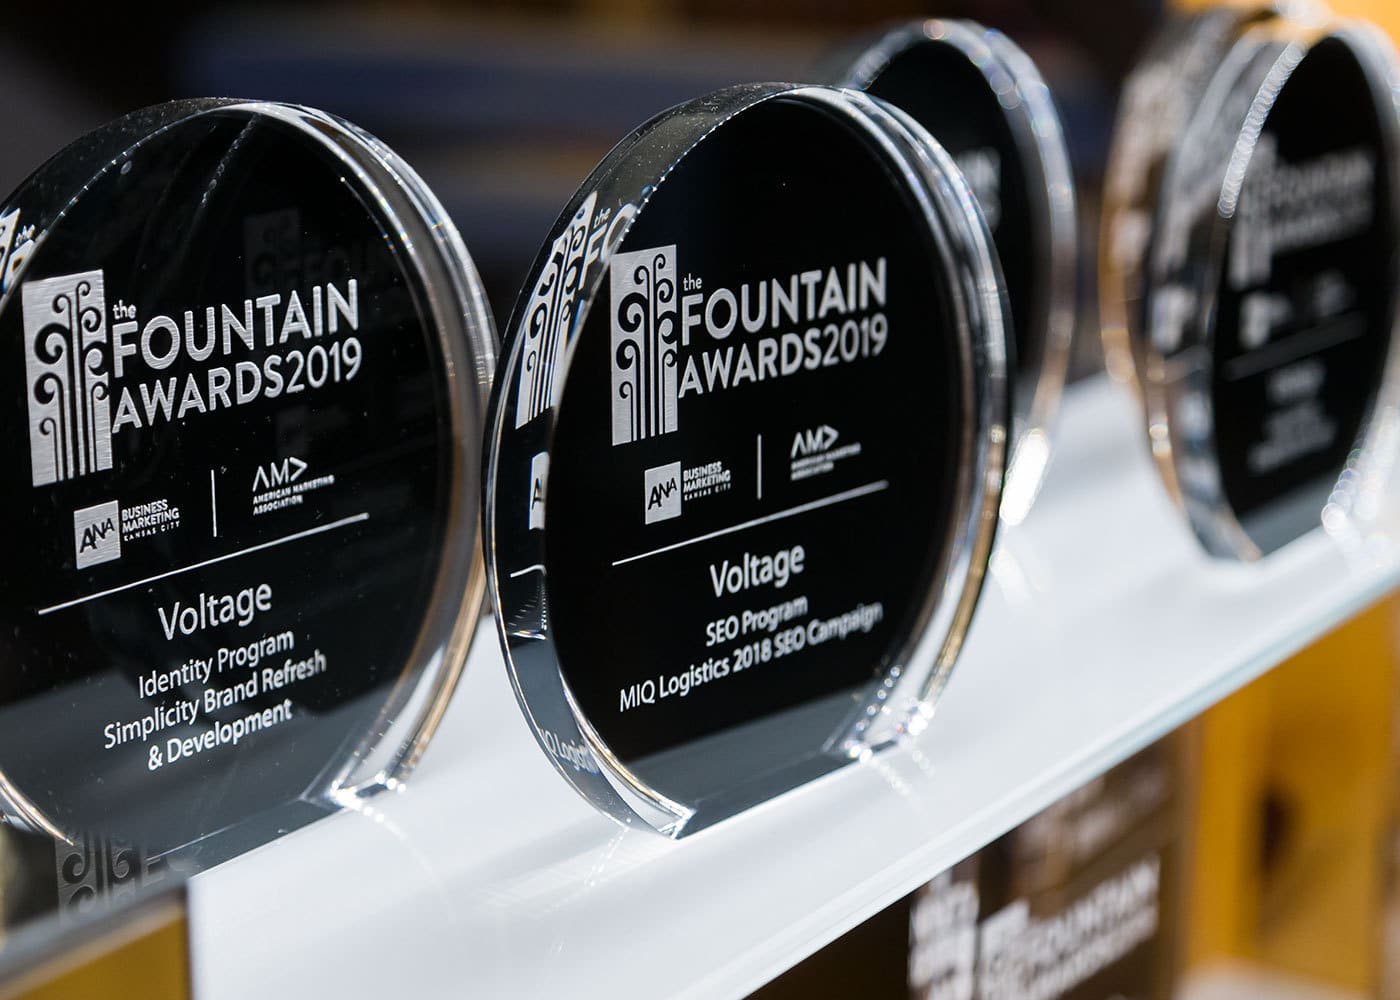 Voltage's 2019 Fountain Awards trophies